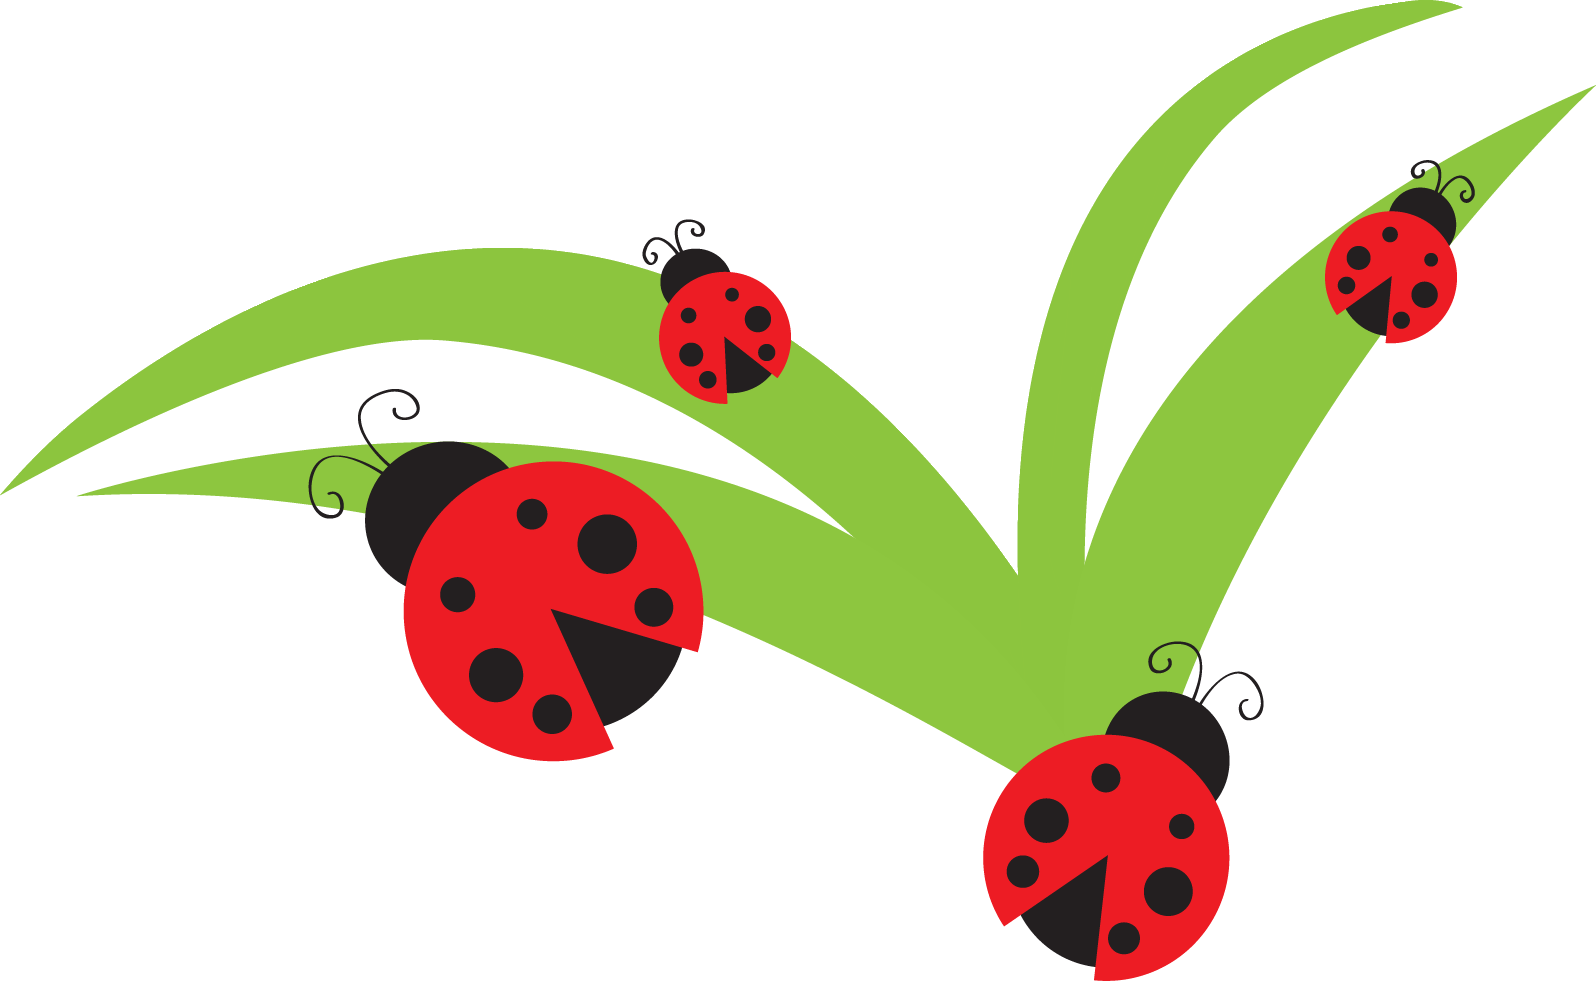 clip art download Insect on flower clipground. Ladybugs clipart vector.